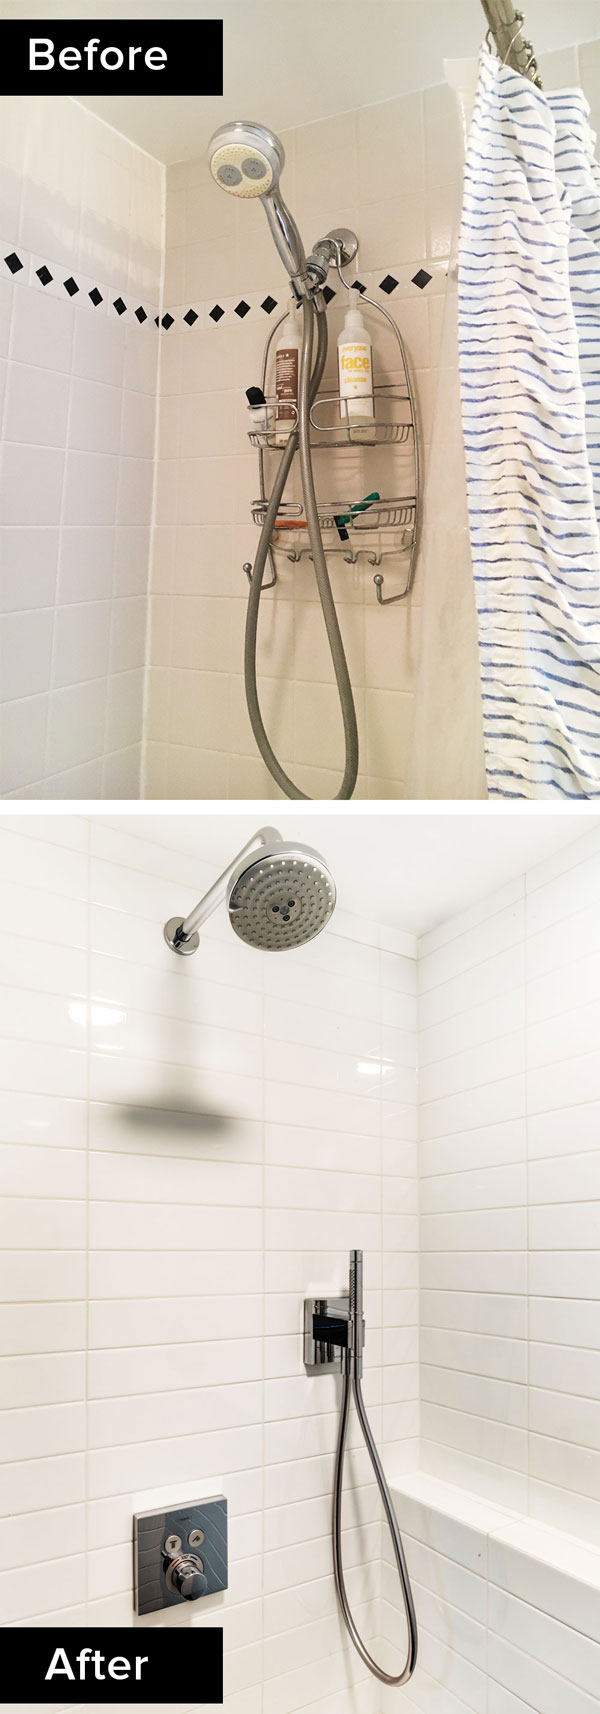 custom bathroom remodel, walk-in shower fixtures